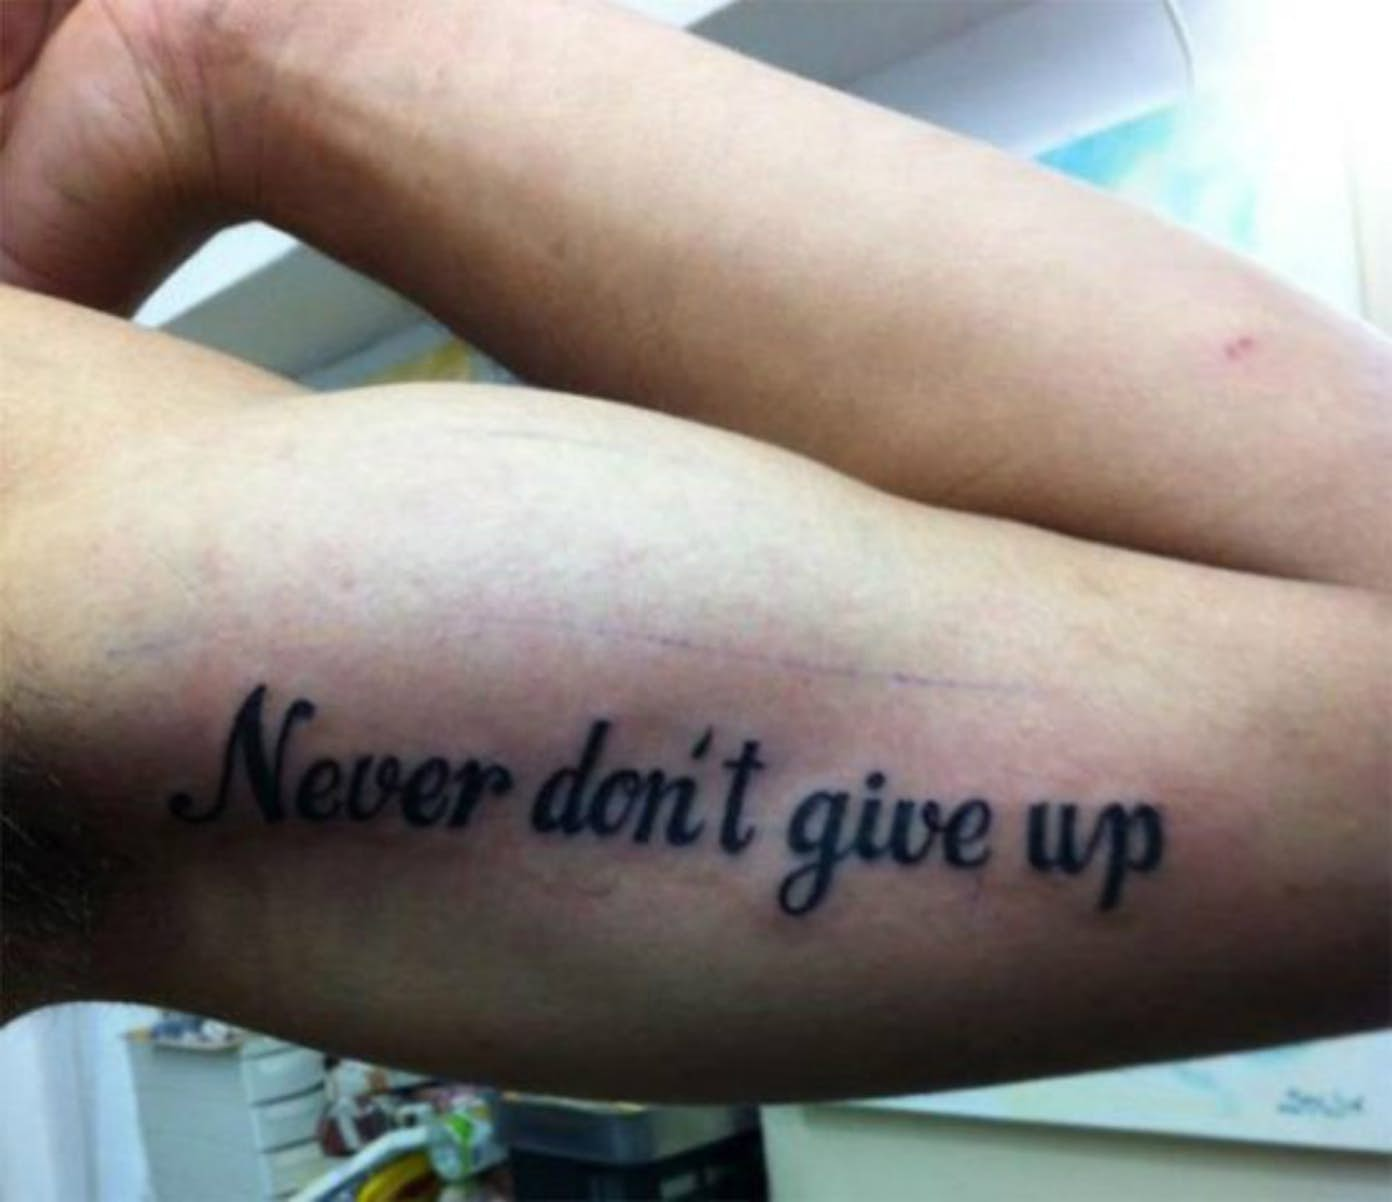 Top 13 ugliest tattoos people definitely regret getting the sentiment never give up is a good one i tell my kids not to give up all the time and i can see why someone would want that as a tattoo biocorpaavc